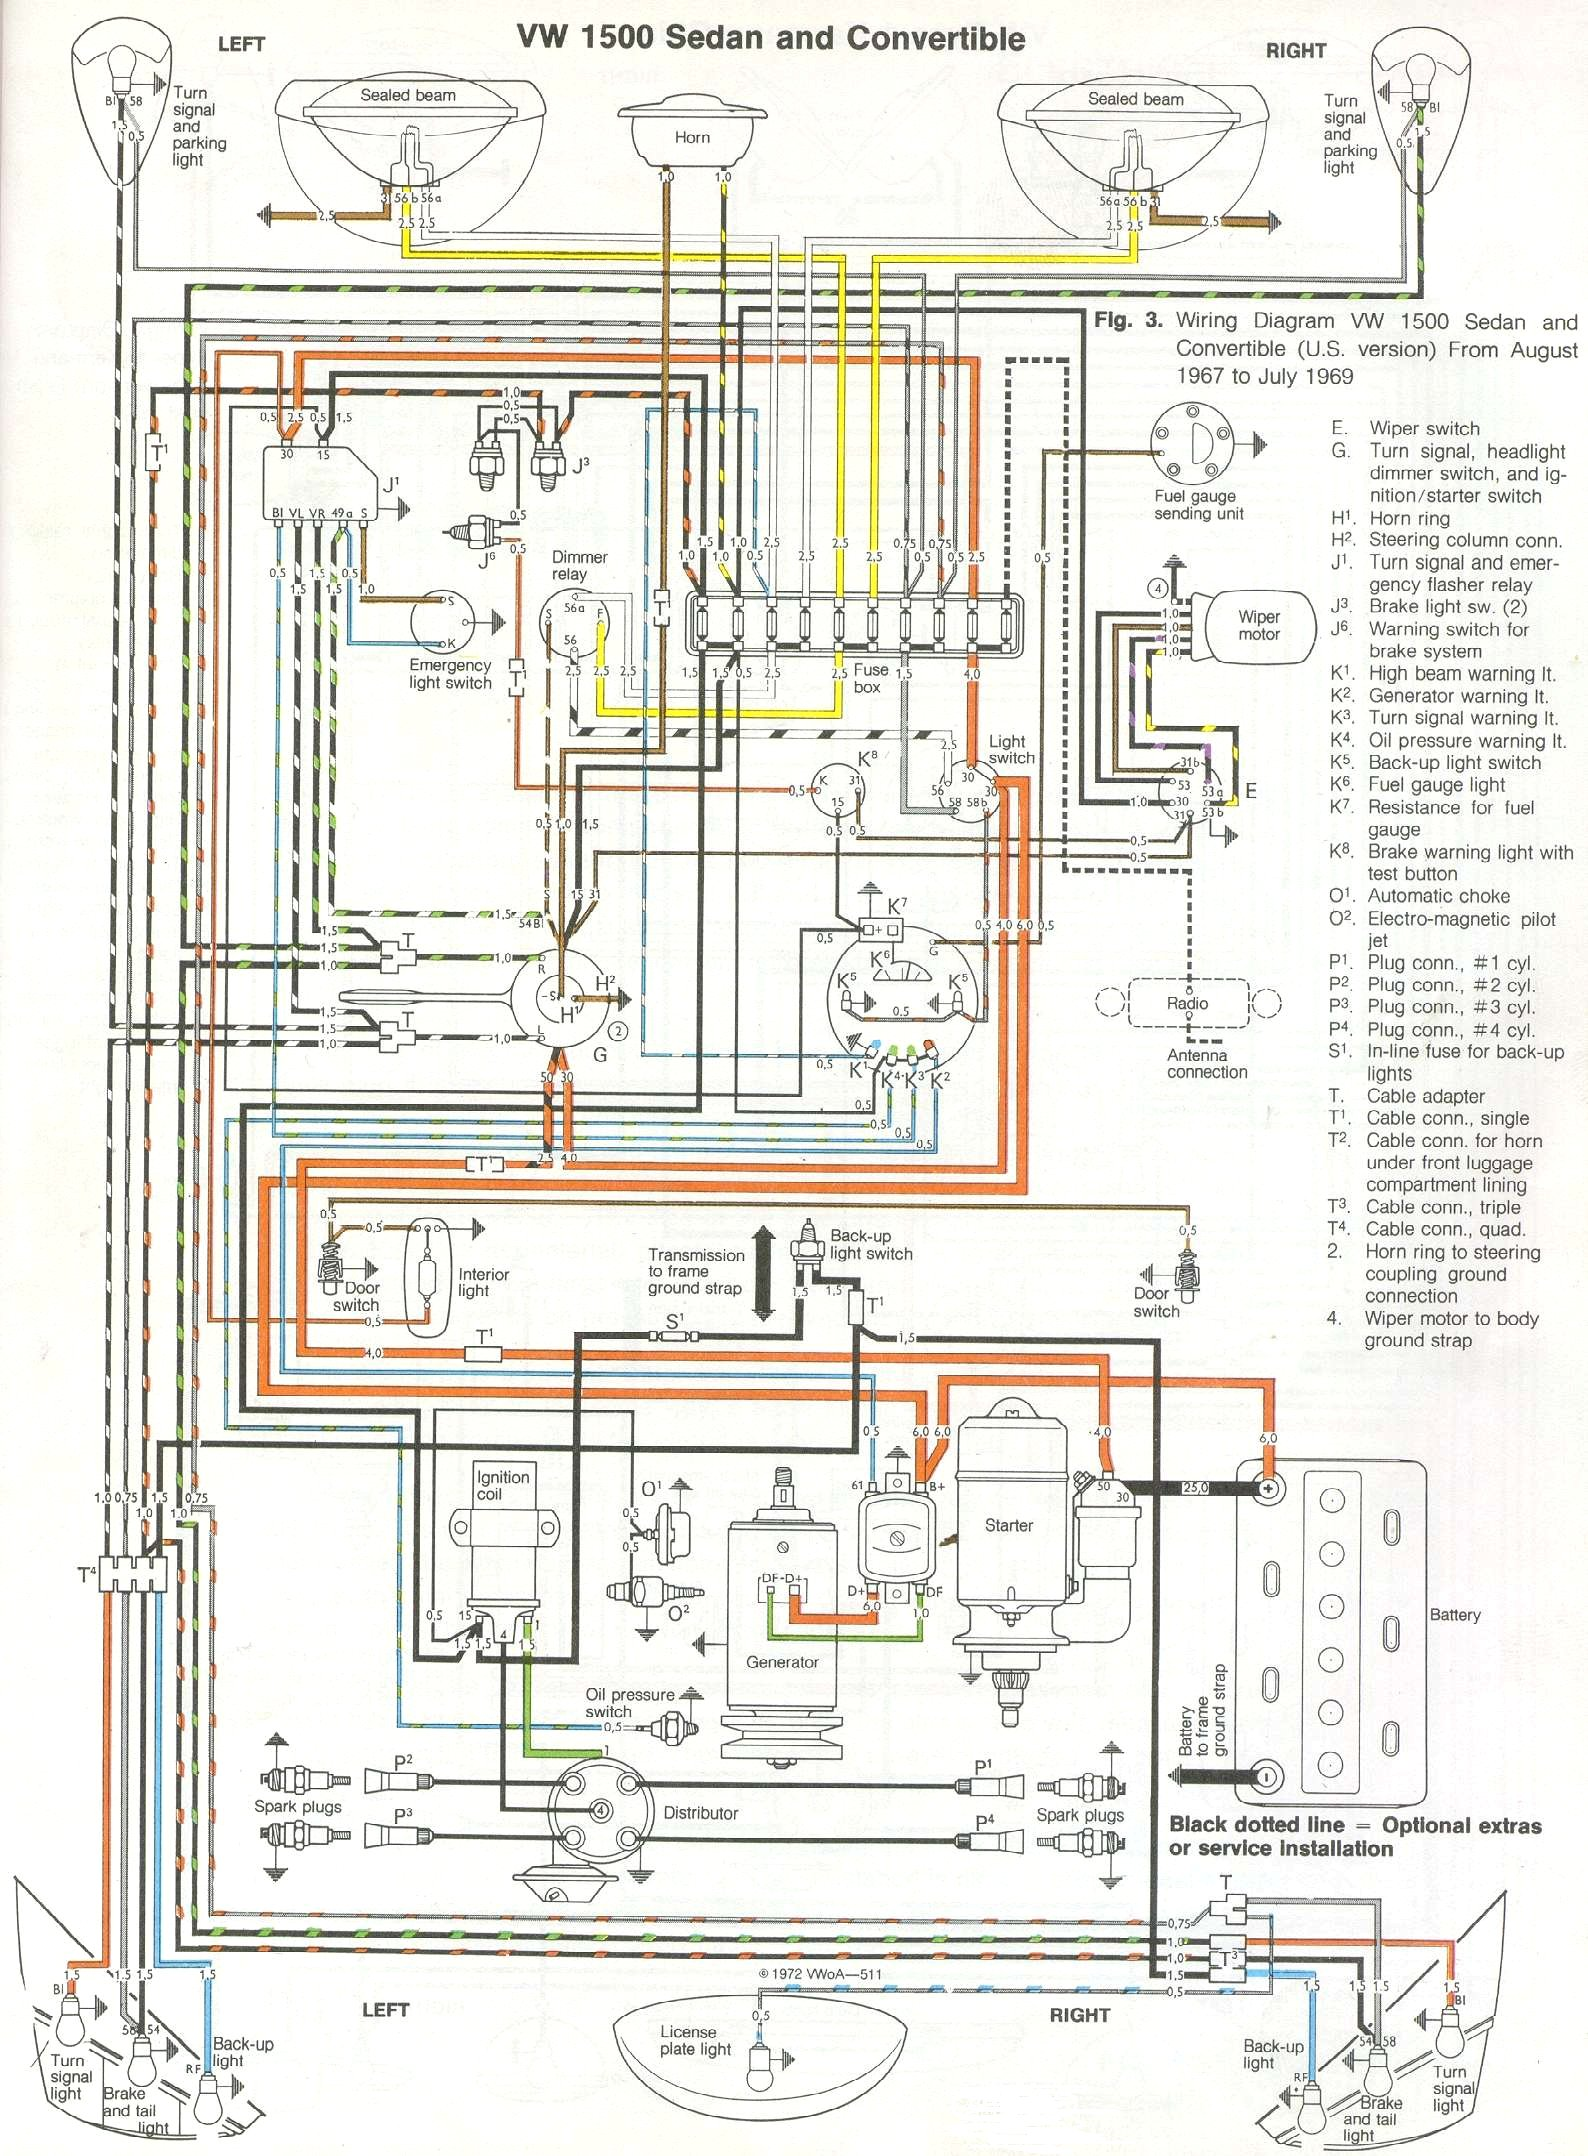 1974 Super Beetle Wiring Diagram Archive Of Automotive Bea Diagrams Volkswagen Simple Rh David Huggett Co Uk